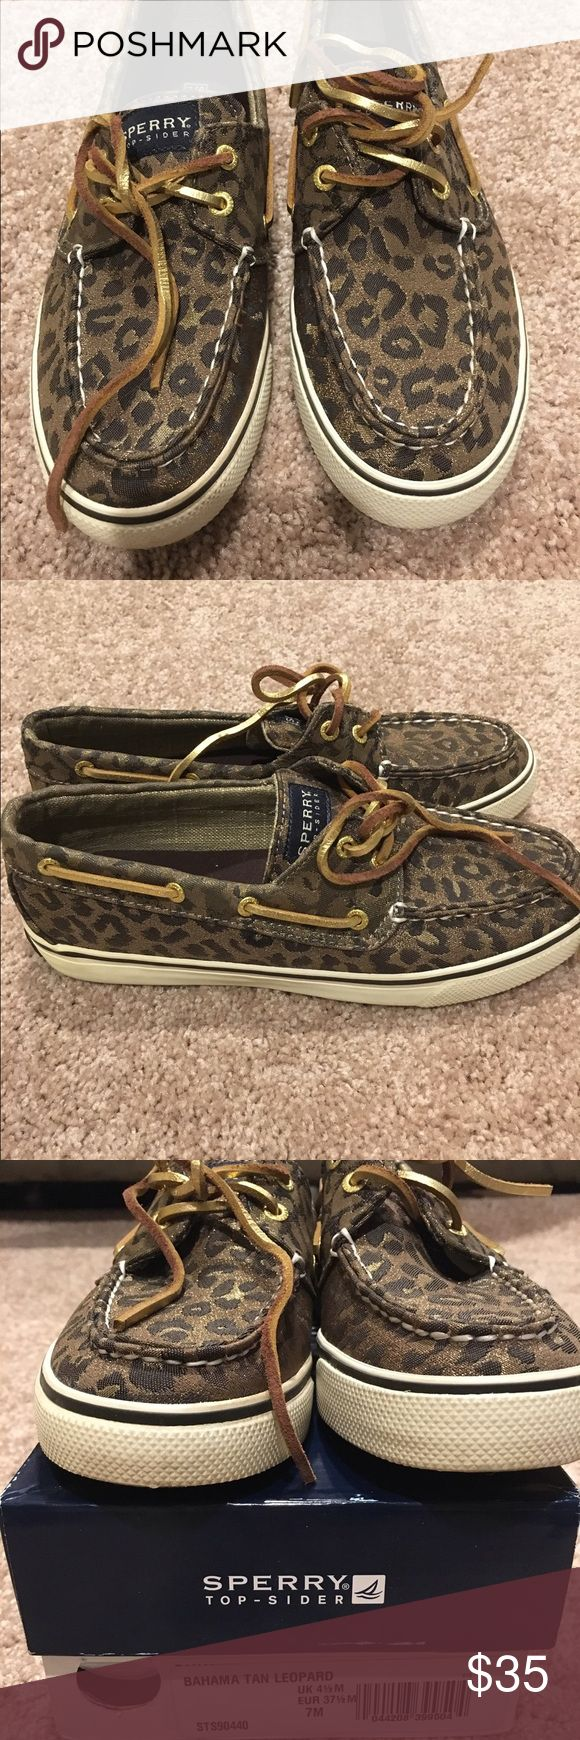 Bahama tan leopard sperry Size 7 Sperry Top-Sider Shoes